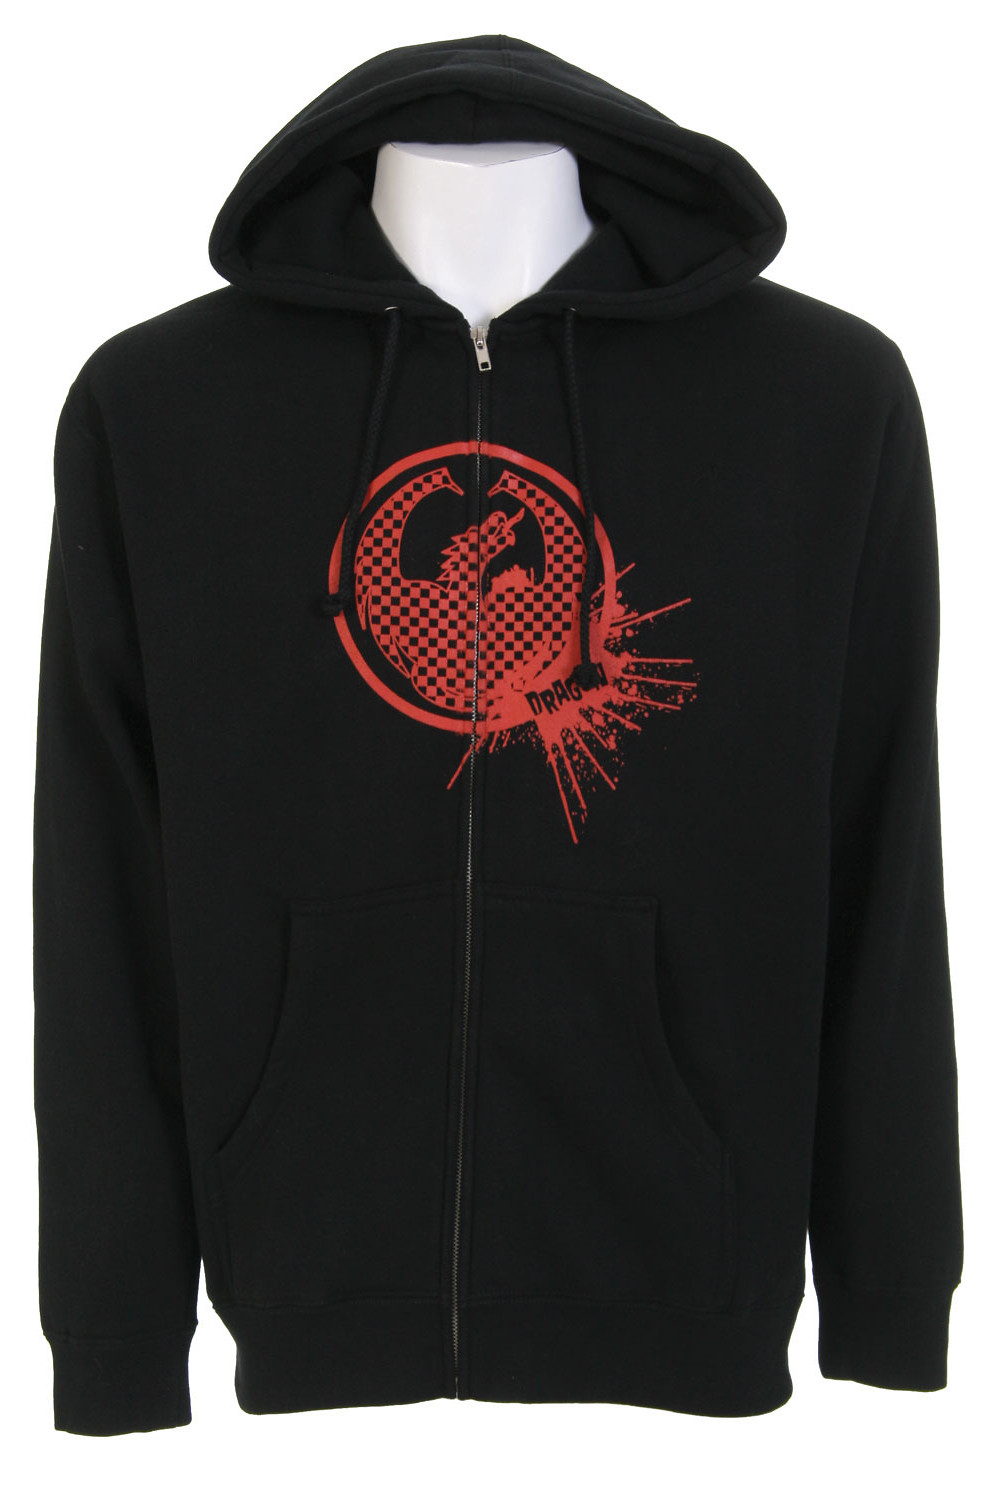 Dragon Skanicon Zip Hoodie Black  drag-skanicon-hd-blk-08.jpg